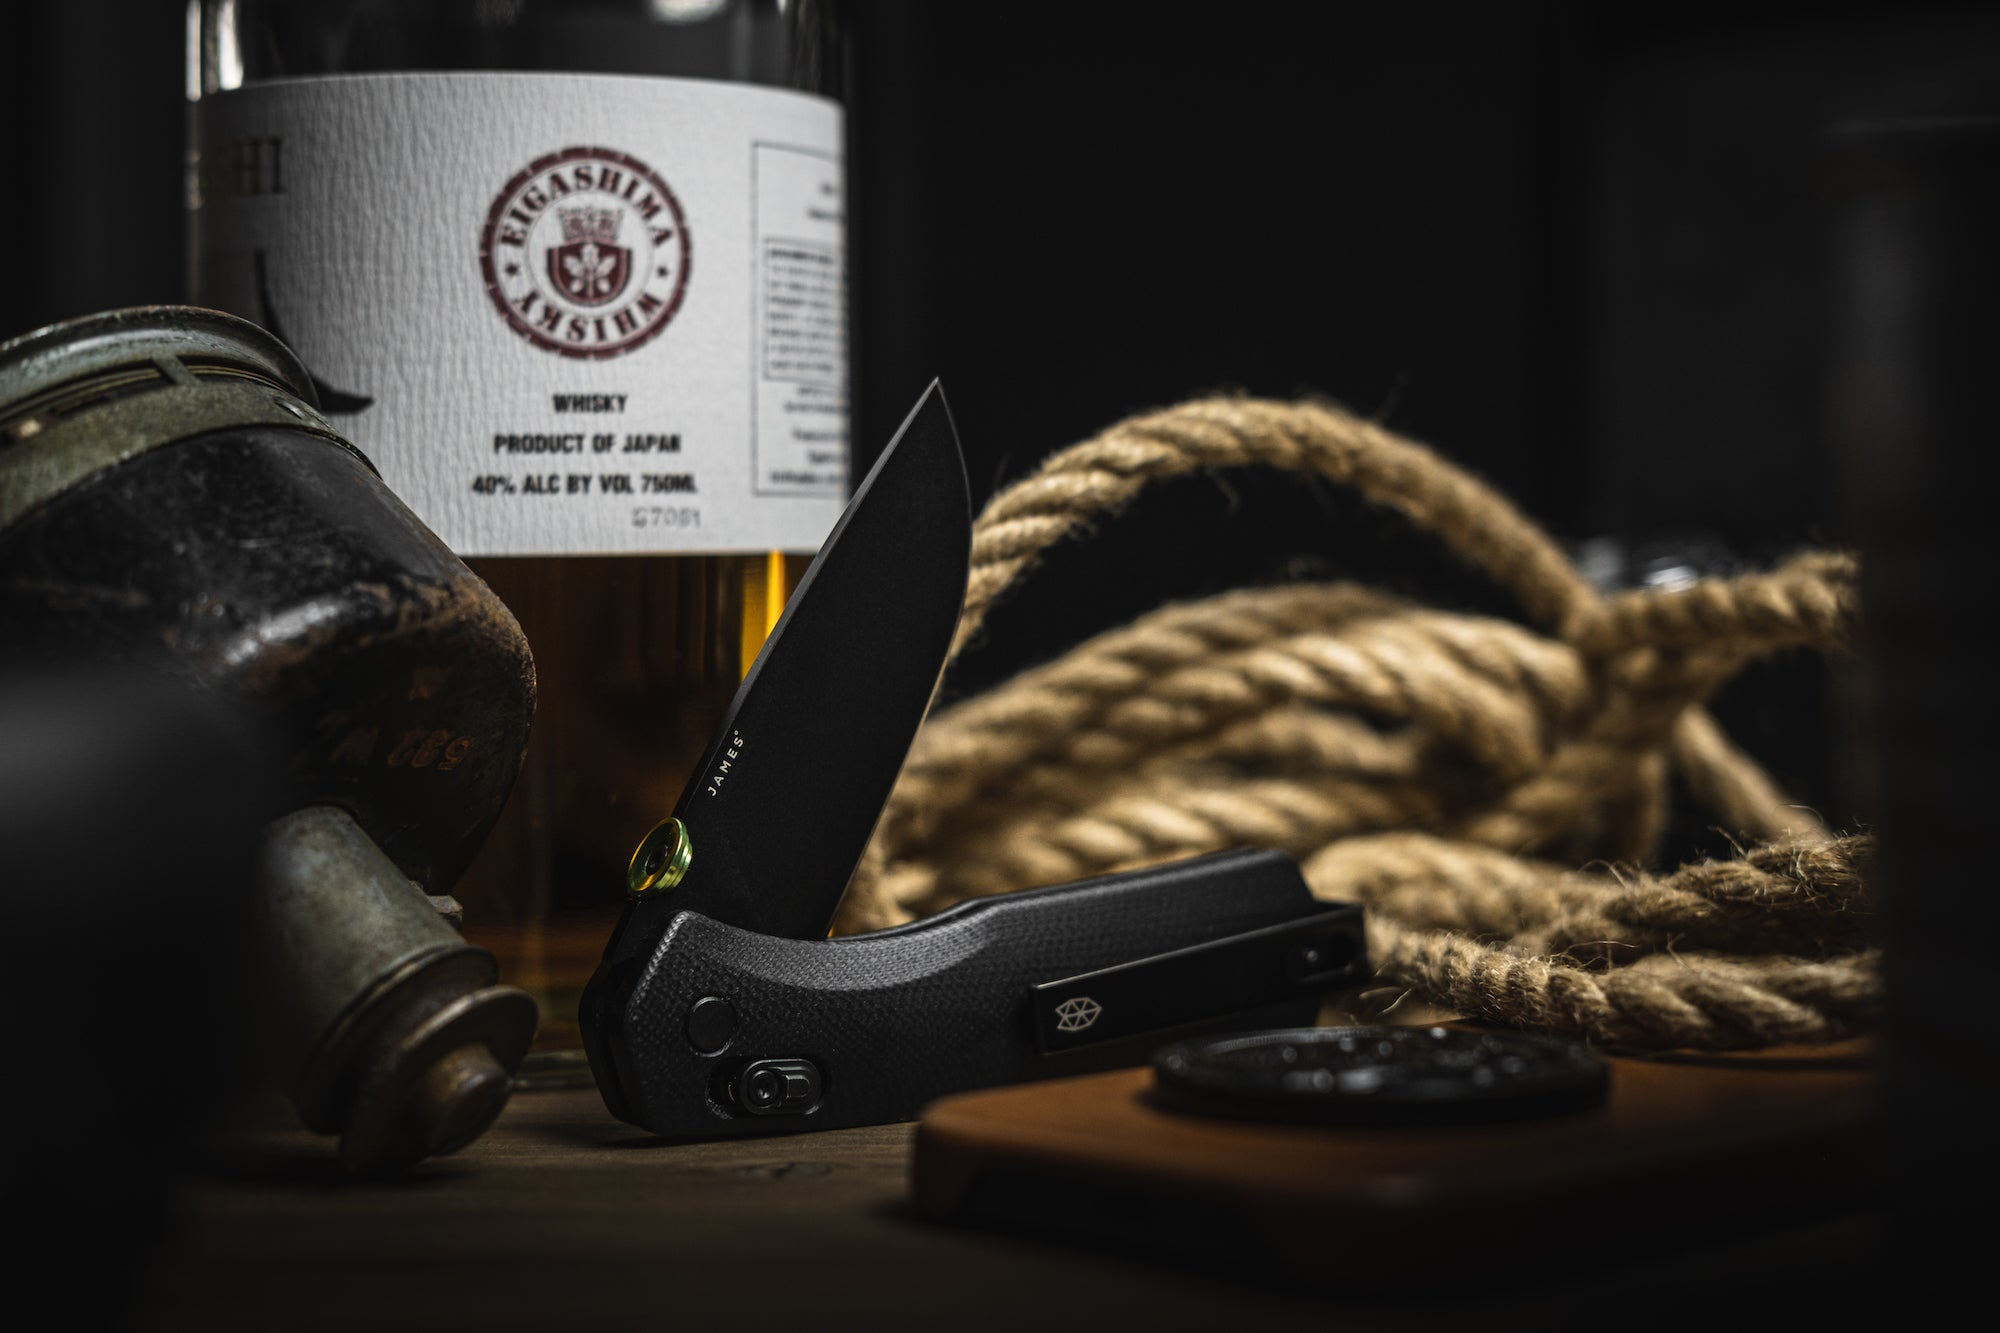 The Carter knife by The James Brand